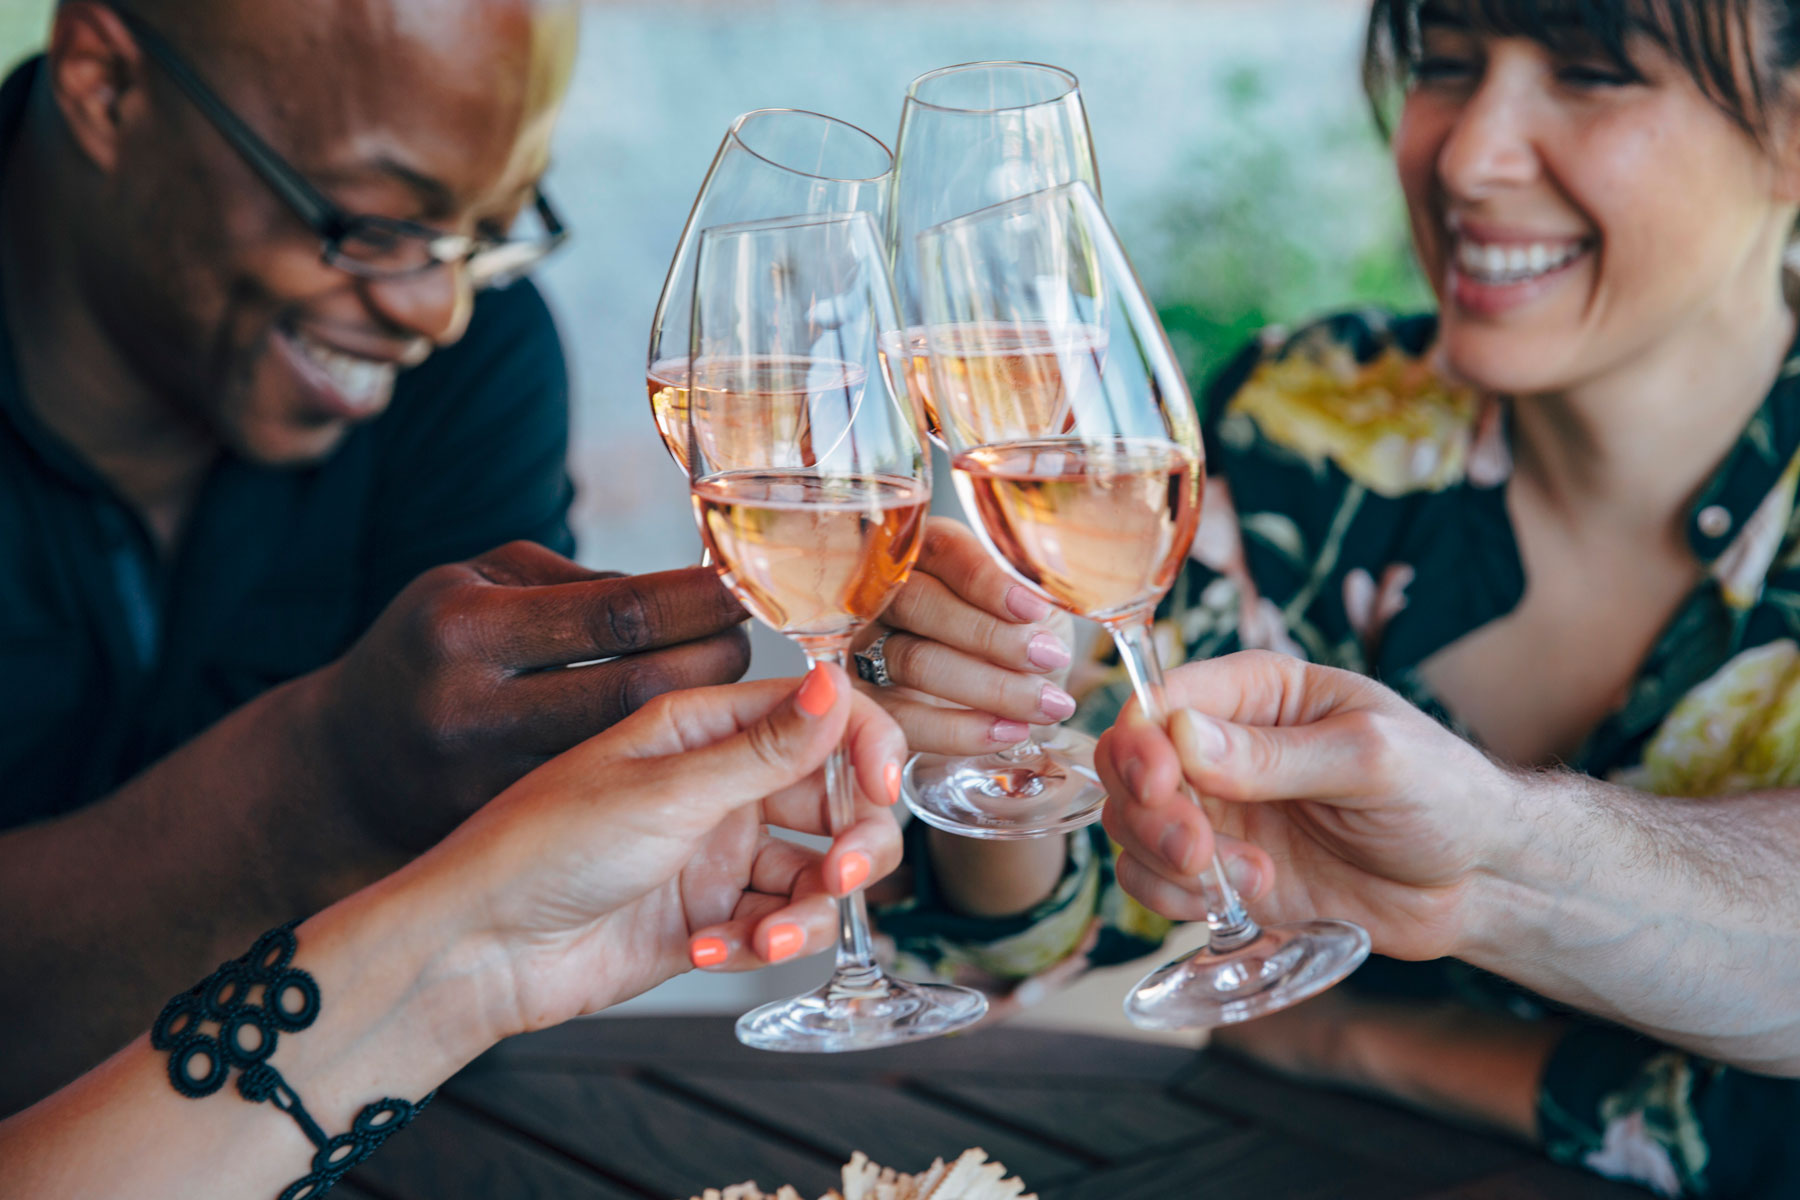 - One of the Willamette Valley's Founding Wineries Launches First Ever Sparkling Wine in November